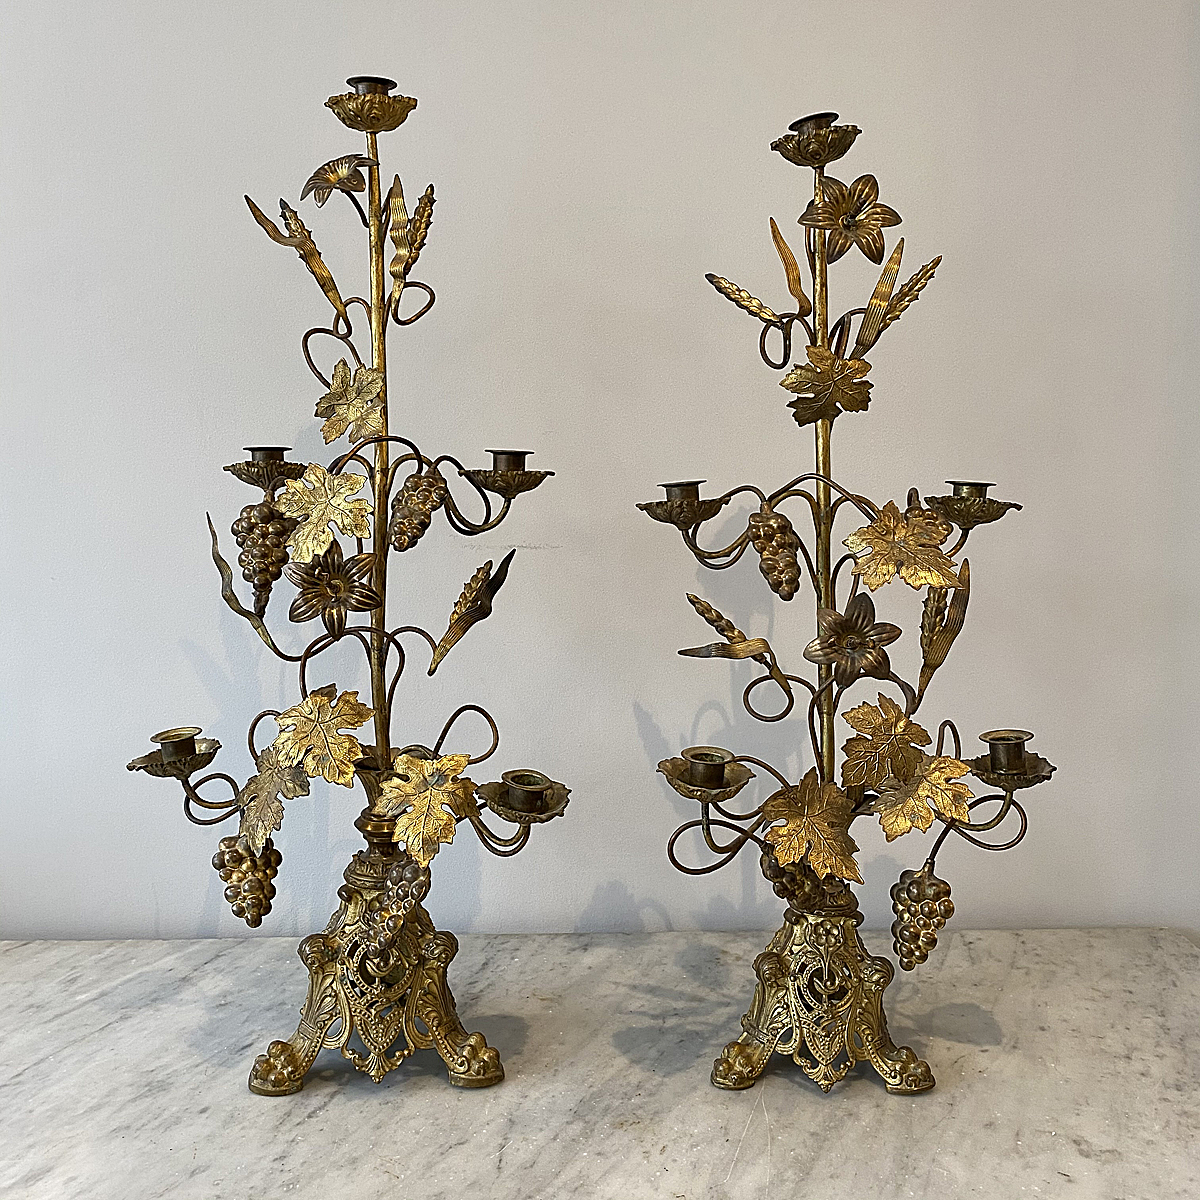 French Candelabra - 19th Century